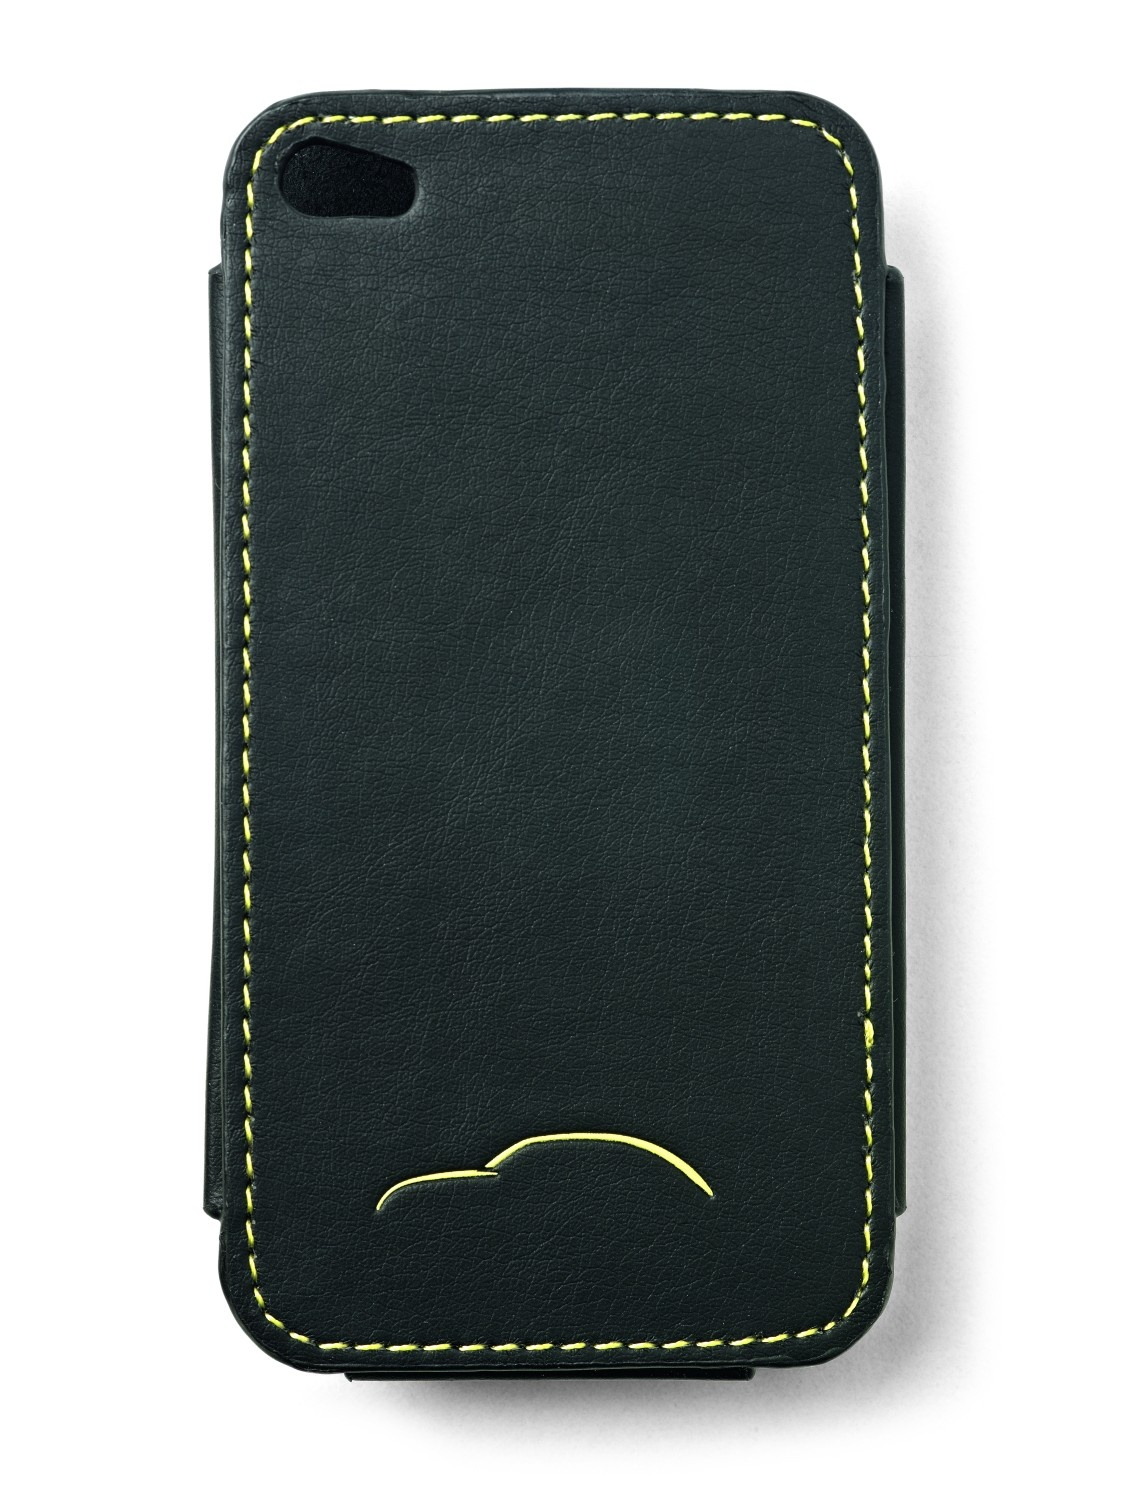 funda iphone 4 - Ítem - 1